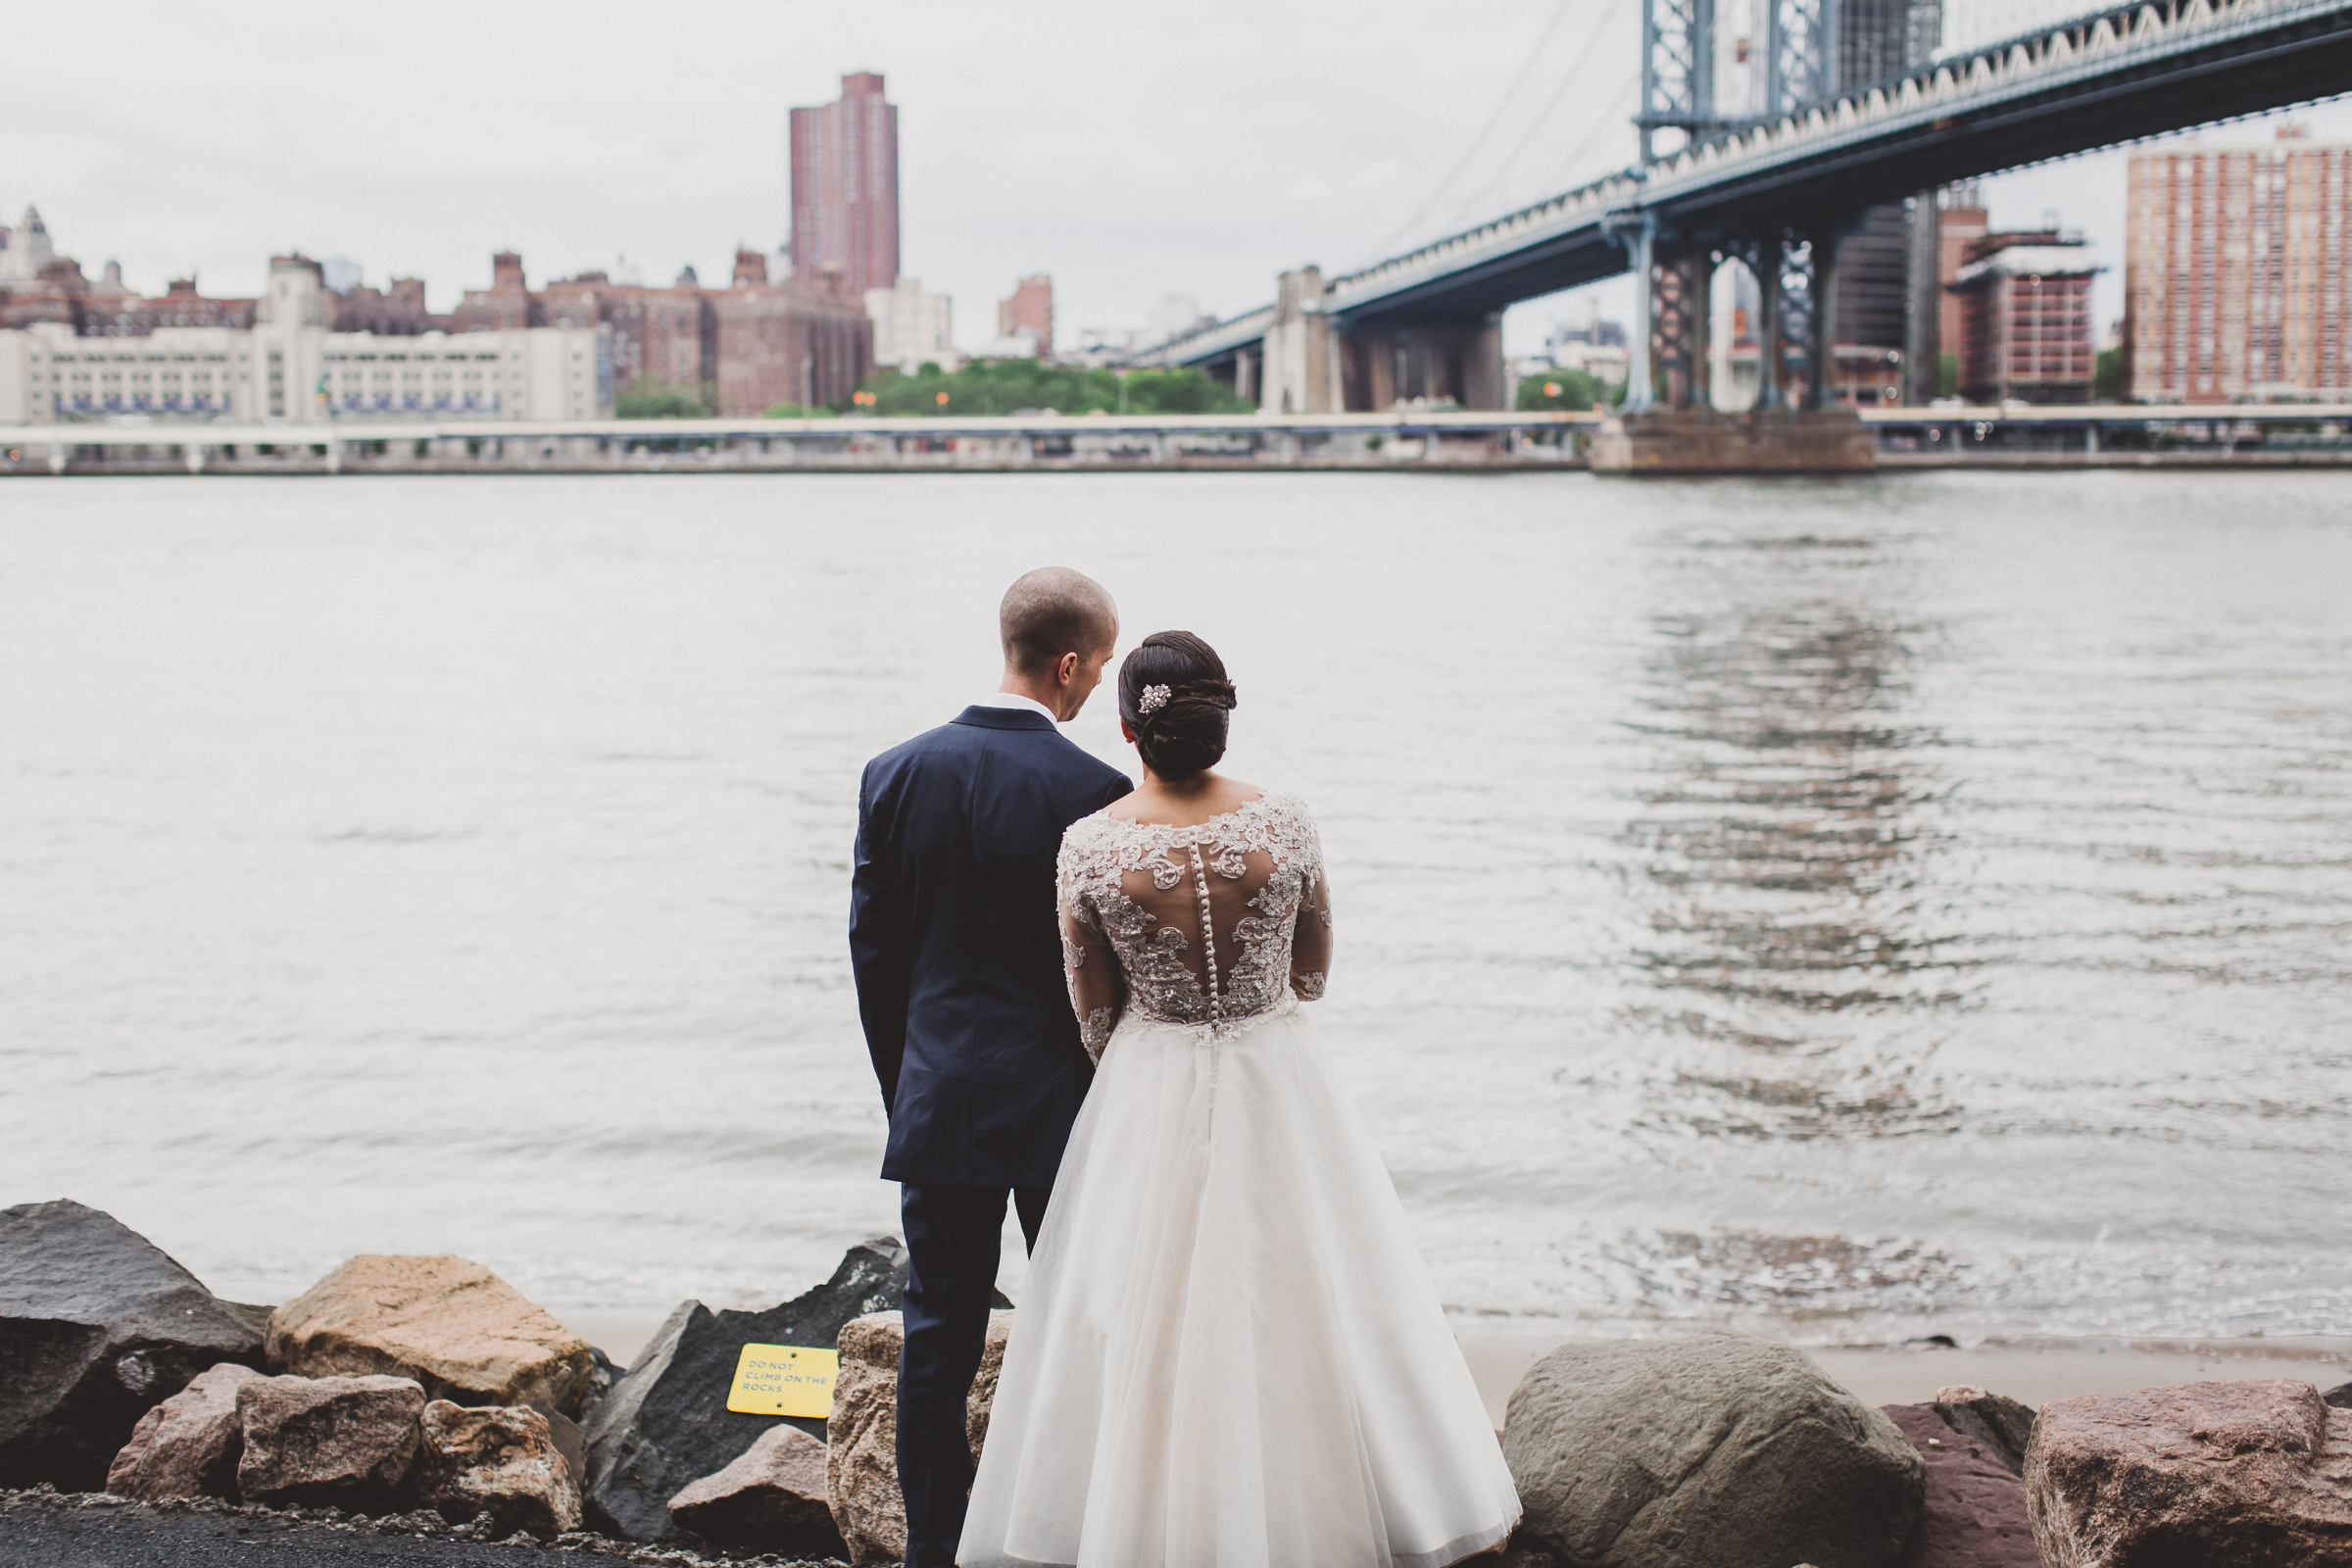 Wagner-Cove-Central-Park-Elopement-New-York-Documentary-Wedding-Photographer-41.jpg